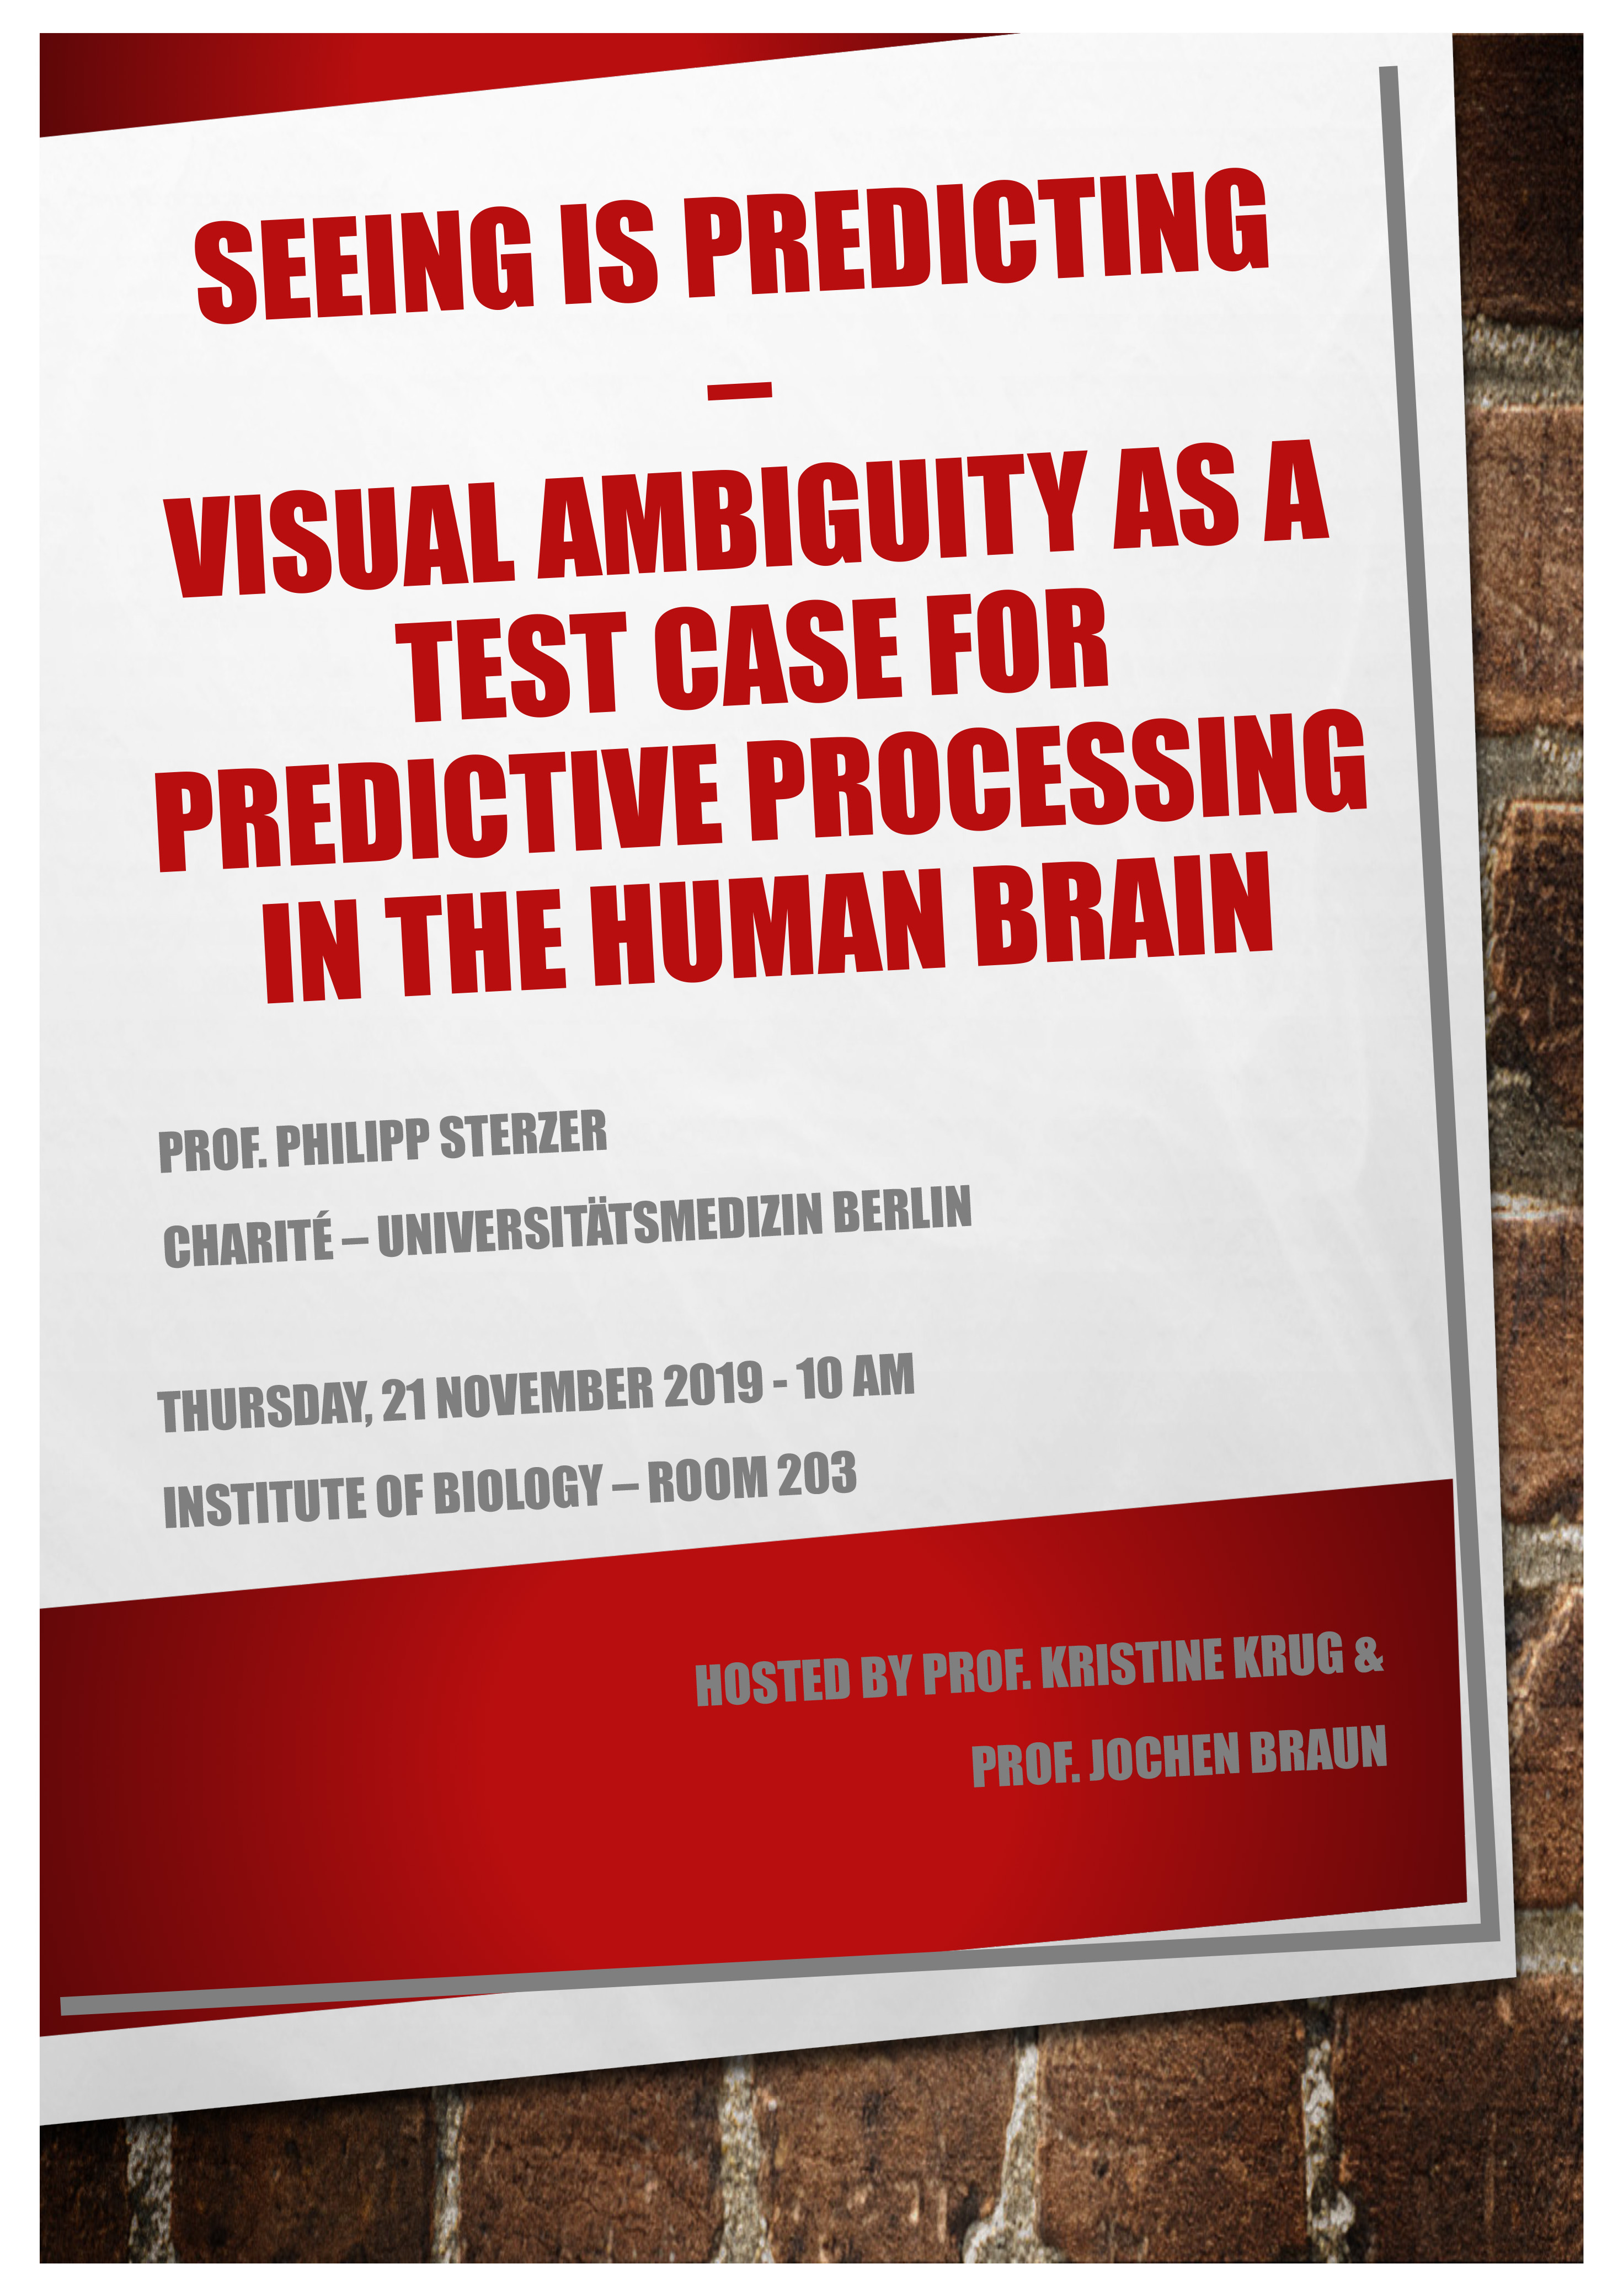 IBIO Talk: SEEING IS PREDICTING – VISUAL AMBIGUIT Y AS A TEST CASE FOR PREDICTIVE PROCESSING IN THE HUMAN BRAIN @ Institute of Biology/ Hs. 91, seminar room 203